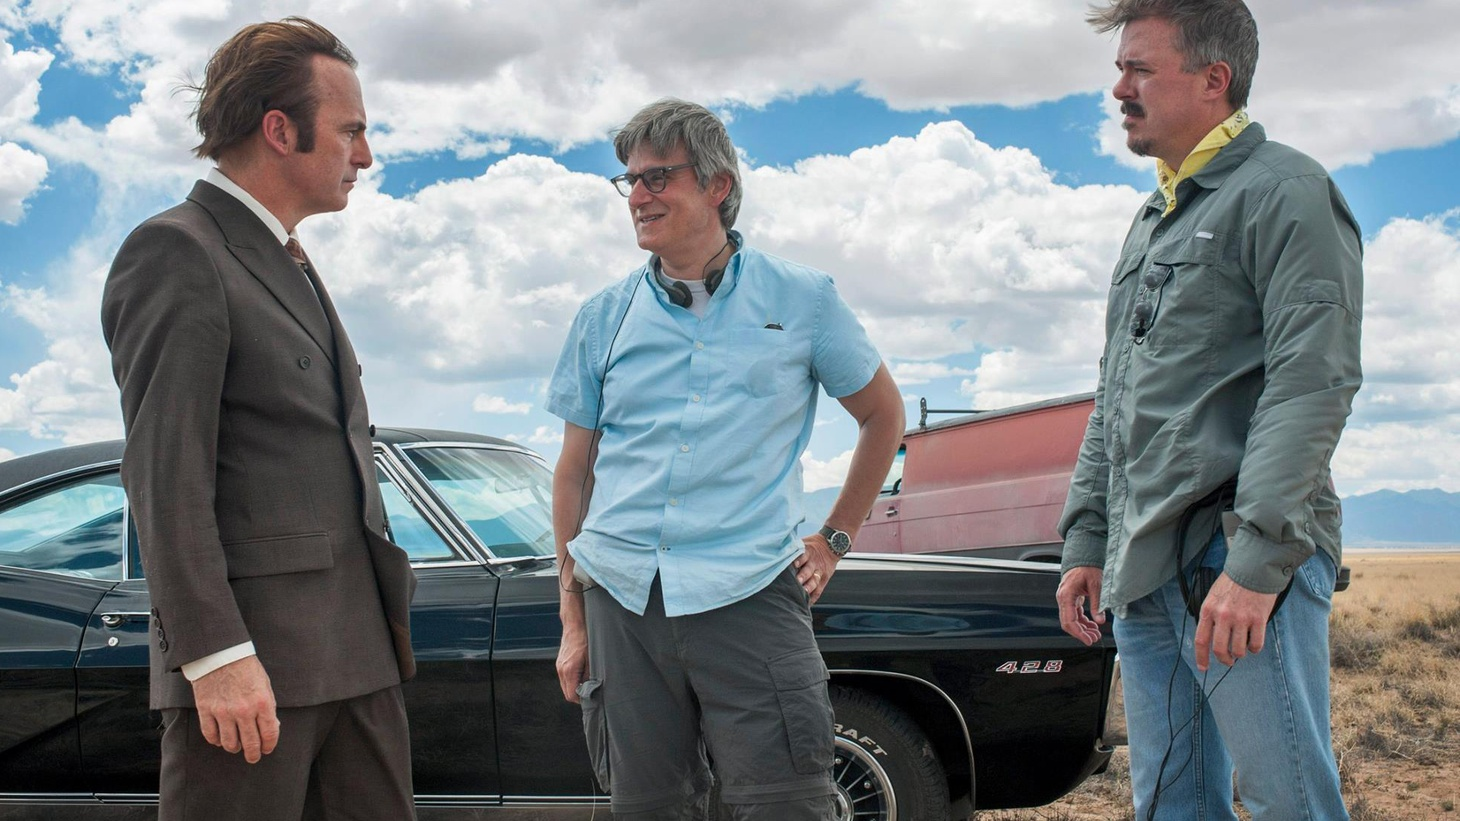 In this bonus episode, we share a recent panel discussion with the cast and creators of Better Call Saul moderated by Michael Schneider.Note: This podcast contains explicit language.